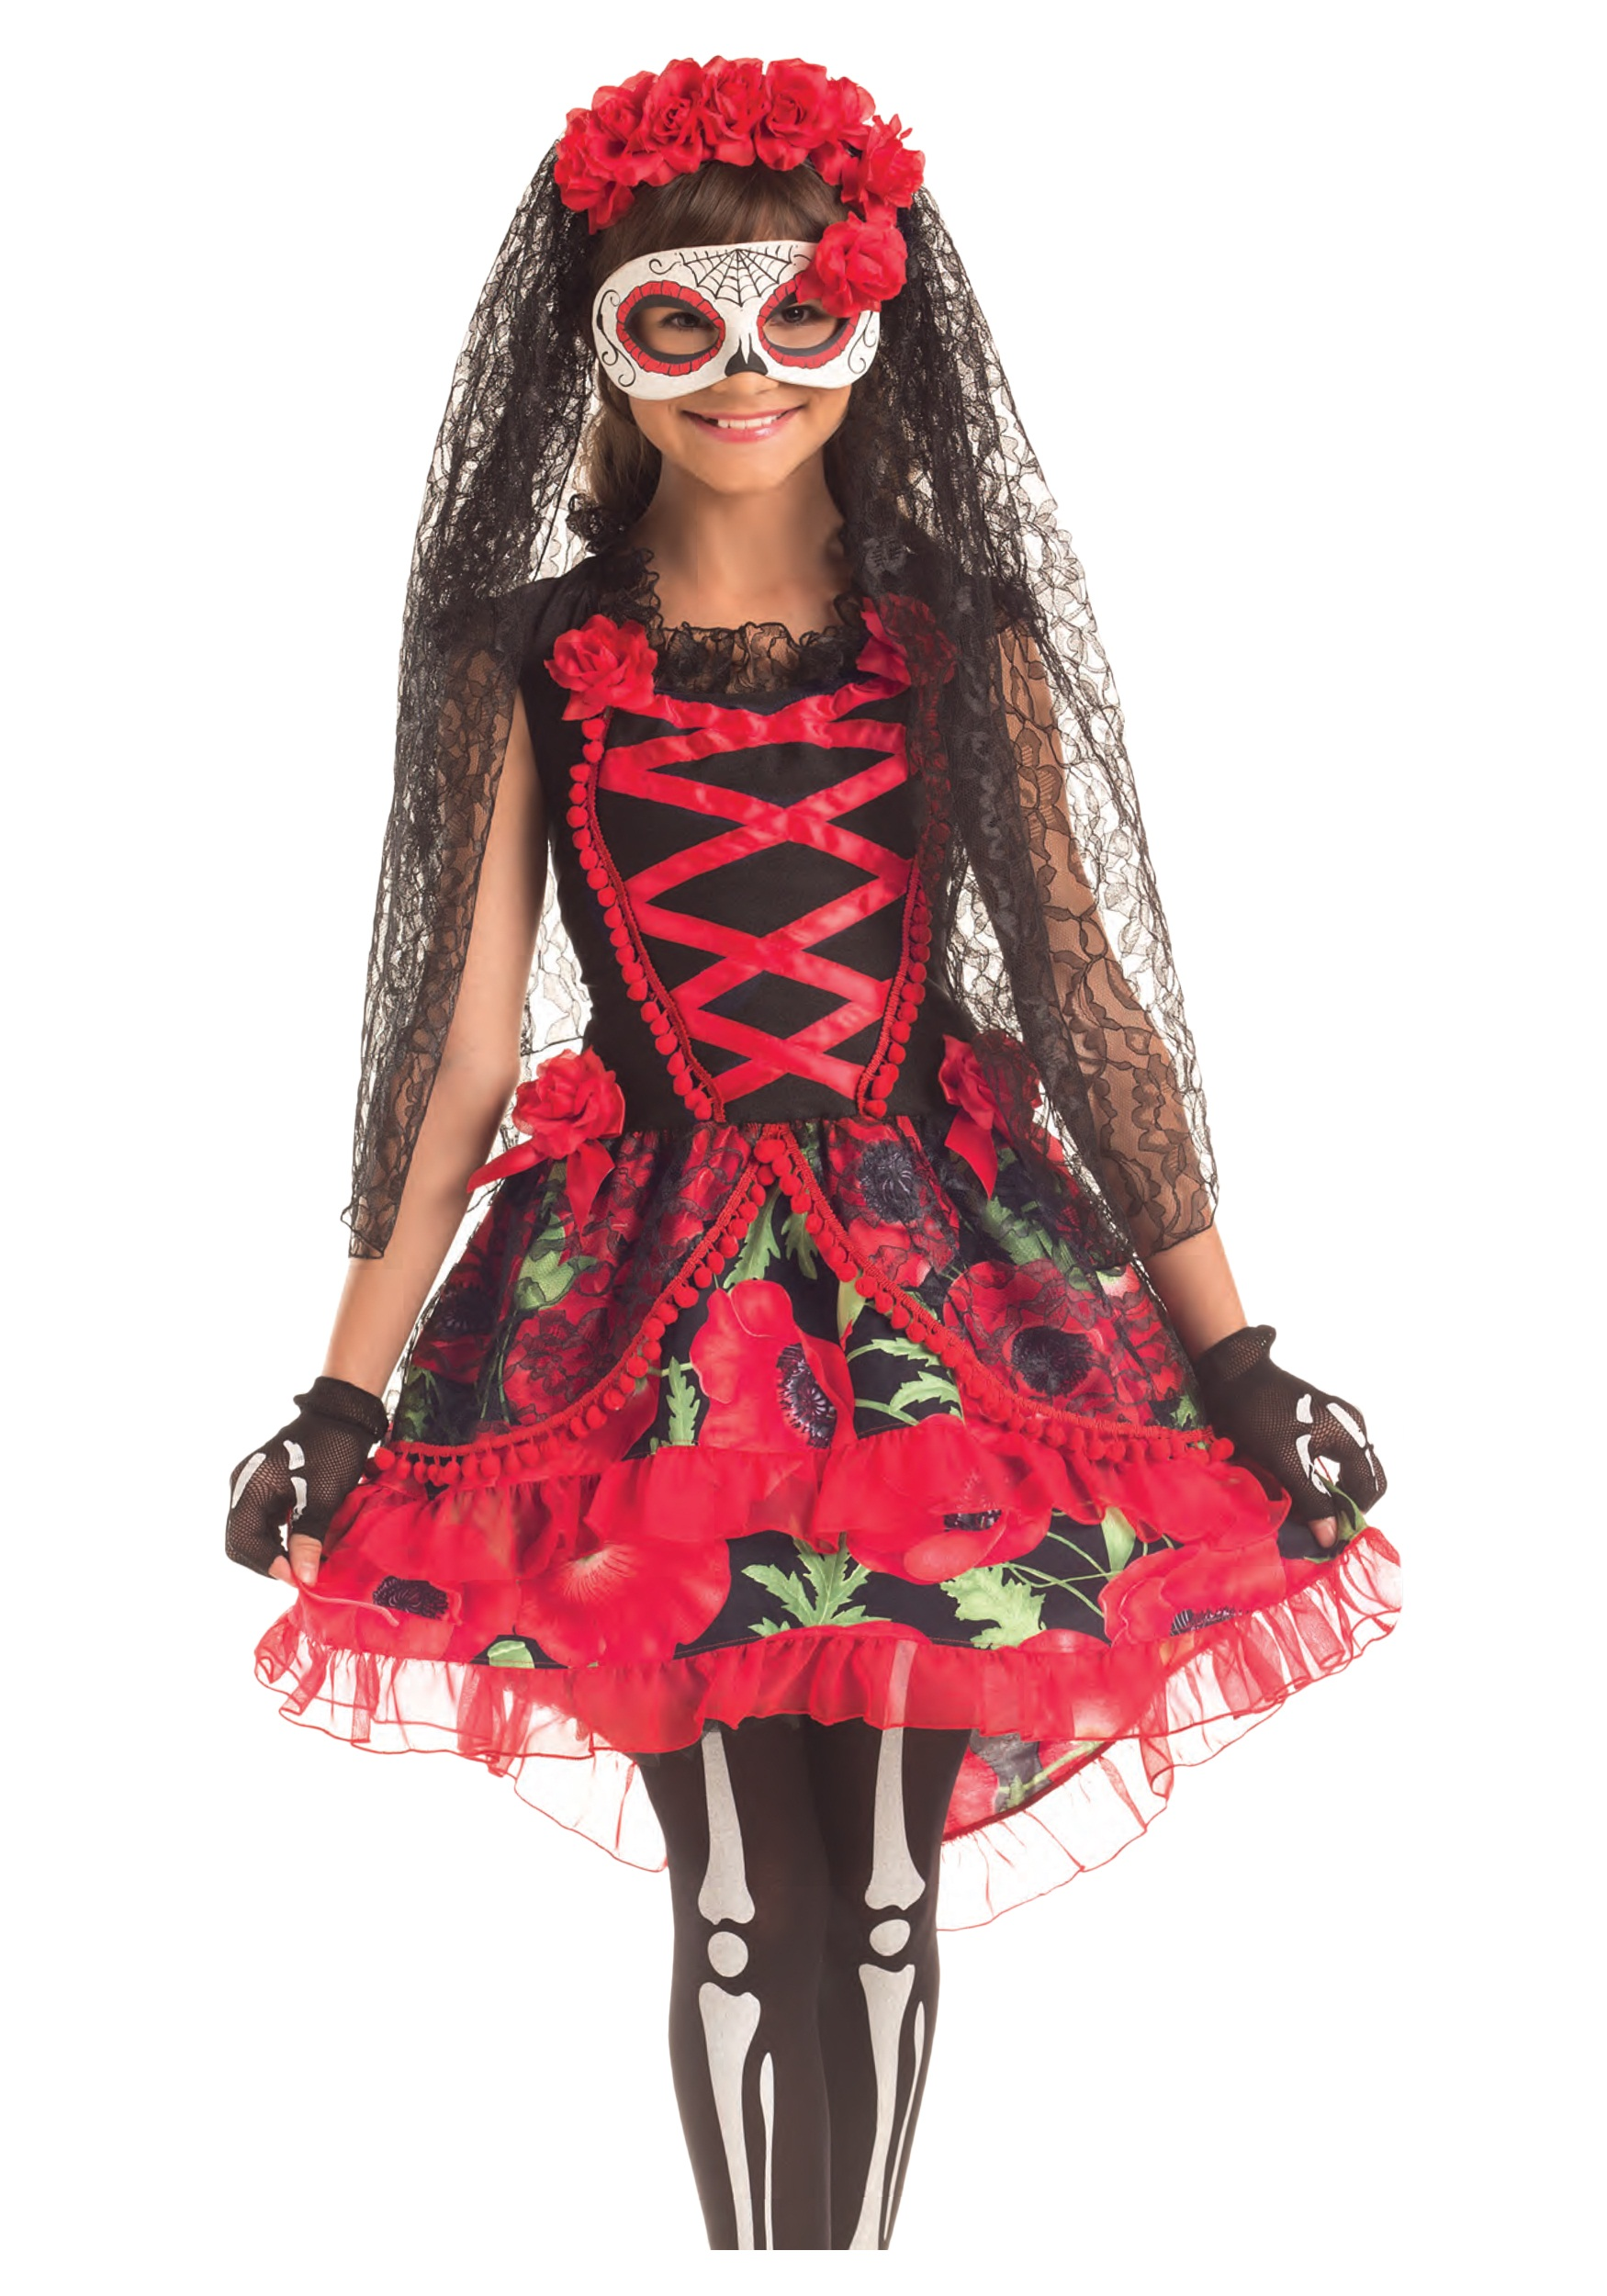 Sugar Skull & Day of the Dead Costumes